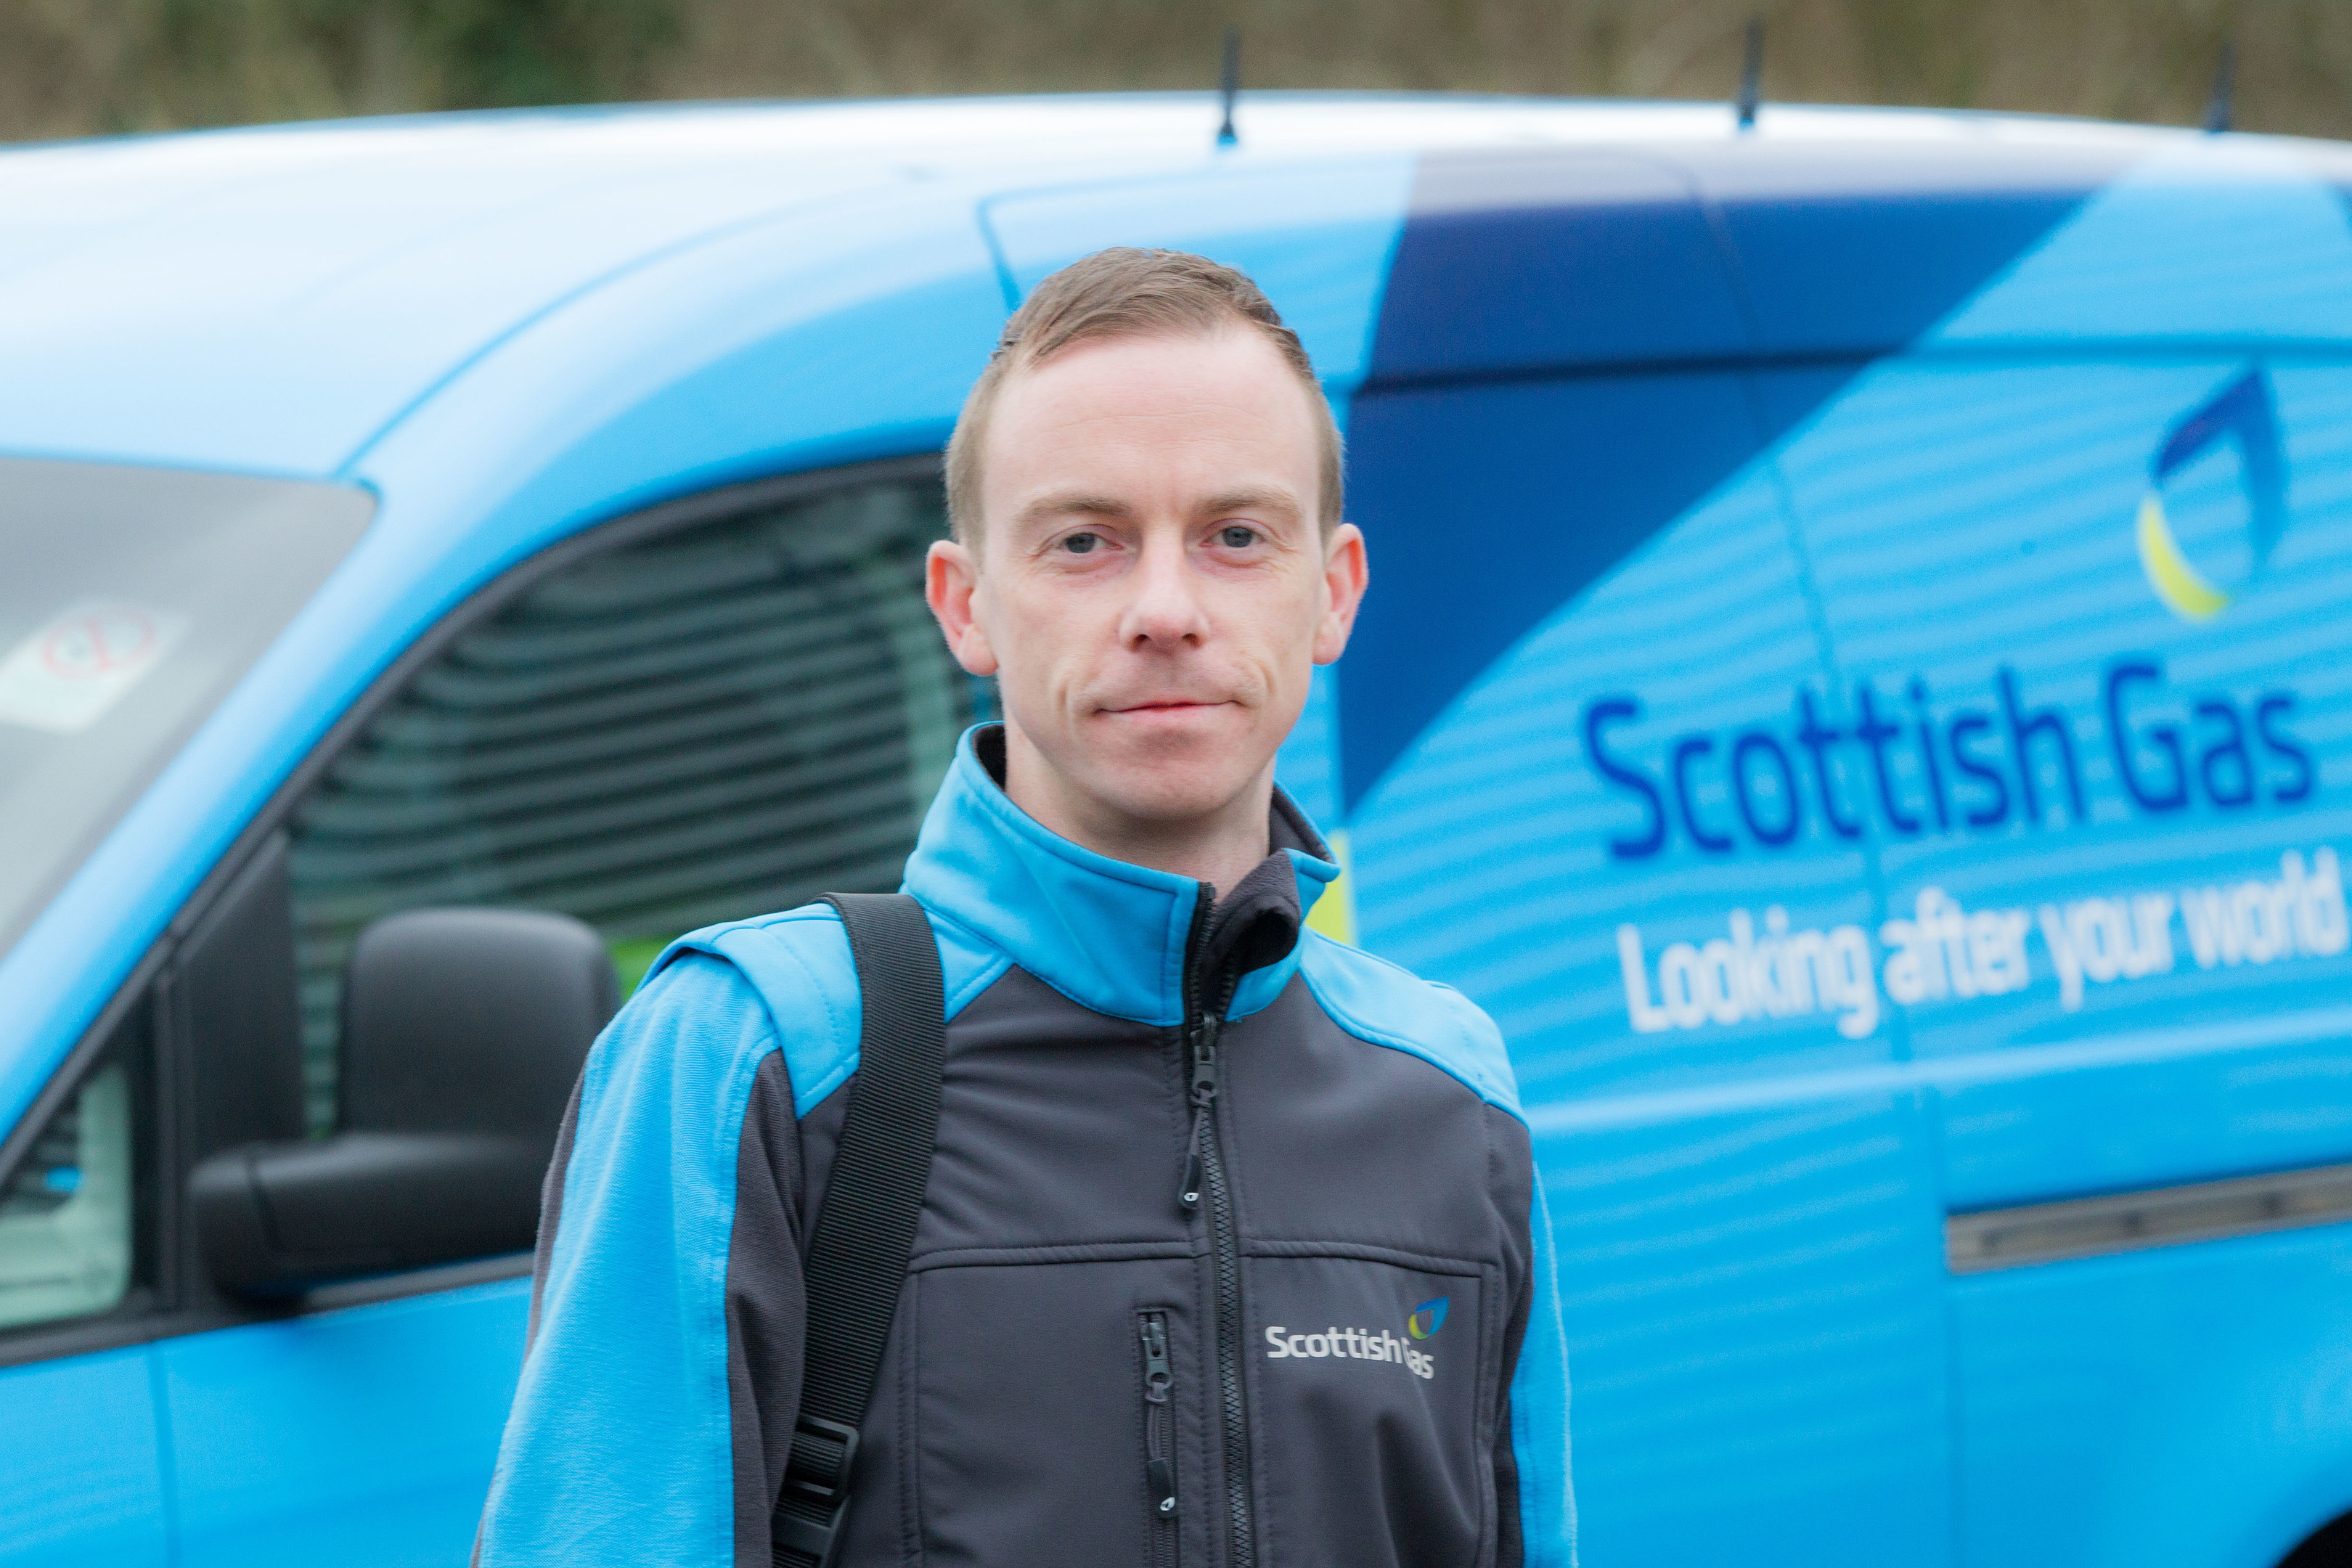 Scottish Gas apprentice Paul Cartright